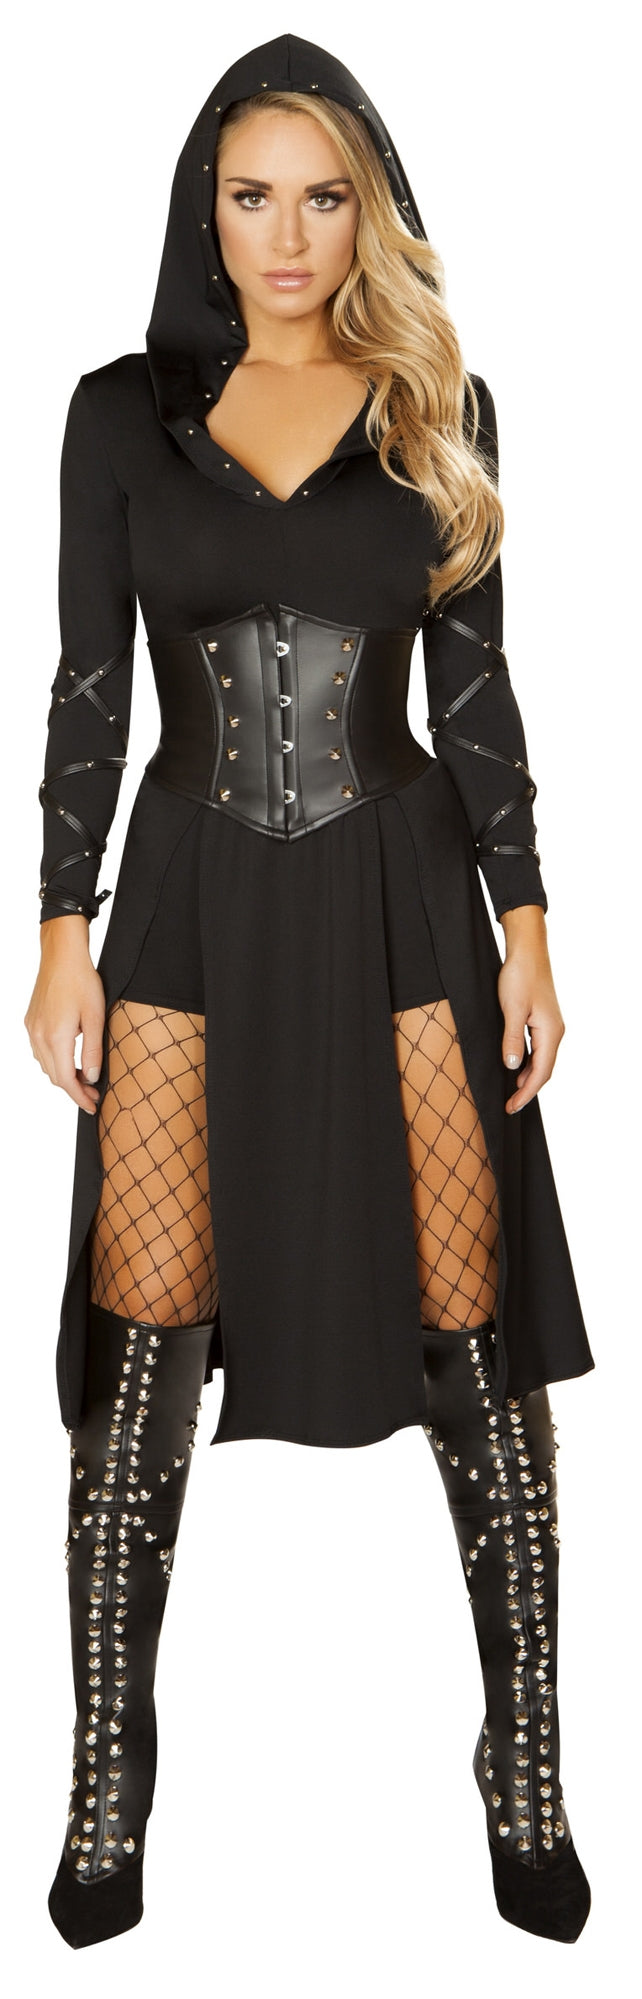 RM-4845 Queen's Assassin costume front